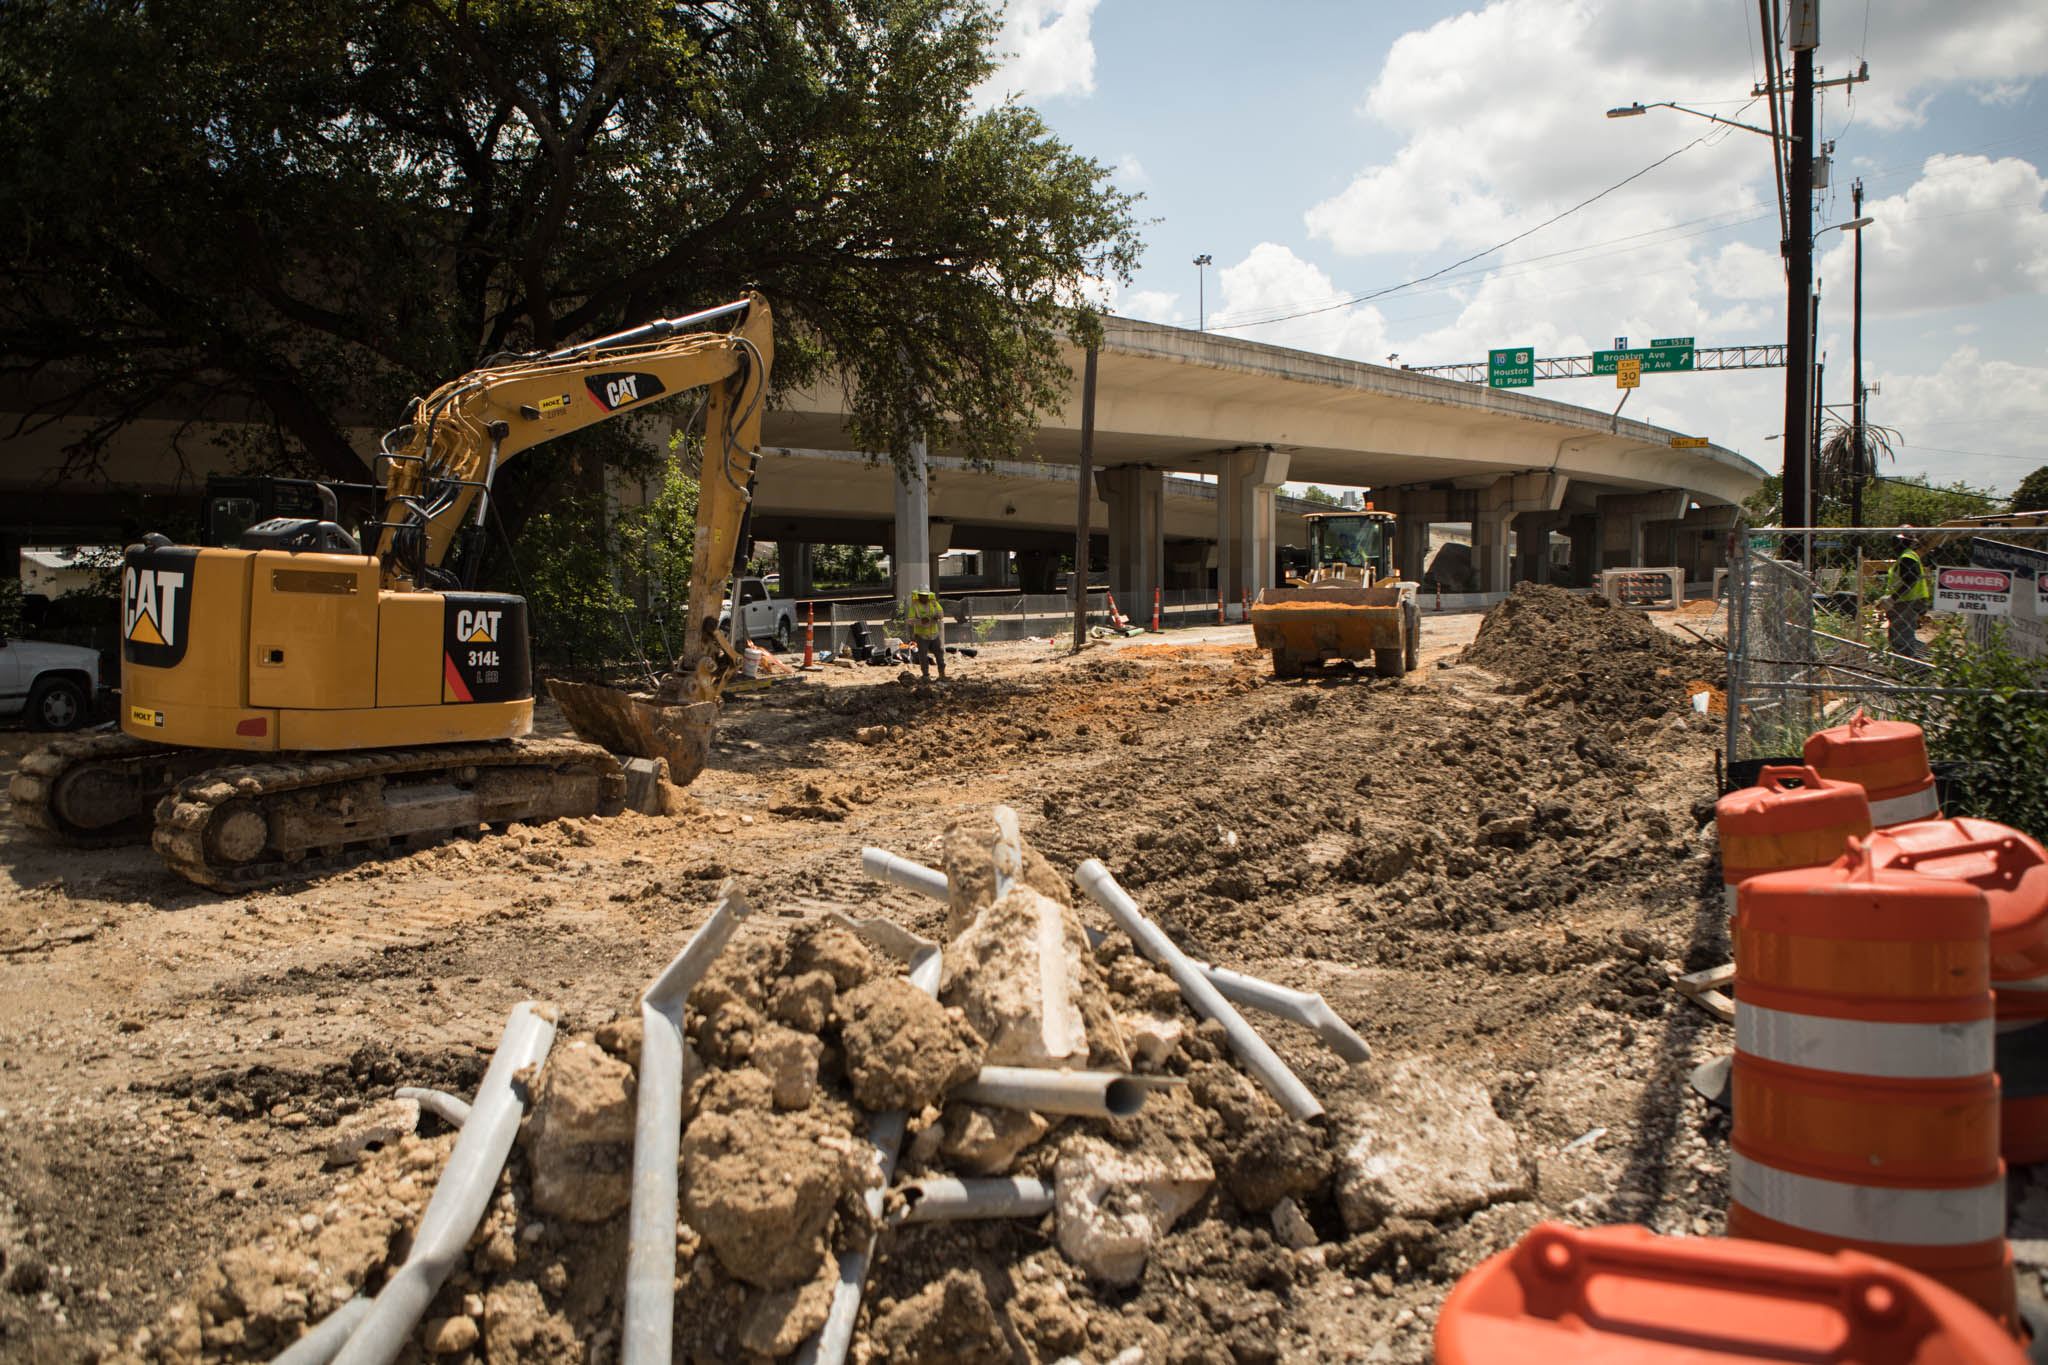 Construction to improve drainage is taking place near the intersection of McCullough Street and I-35.